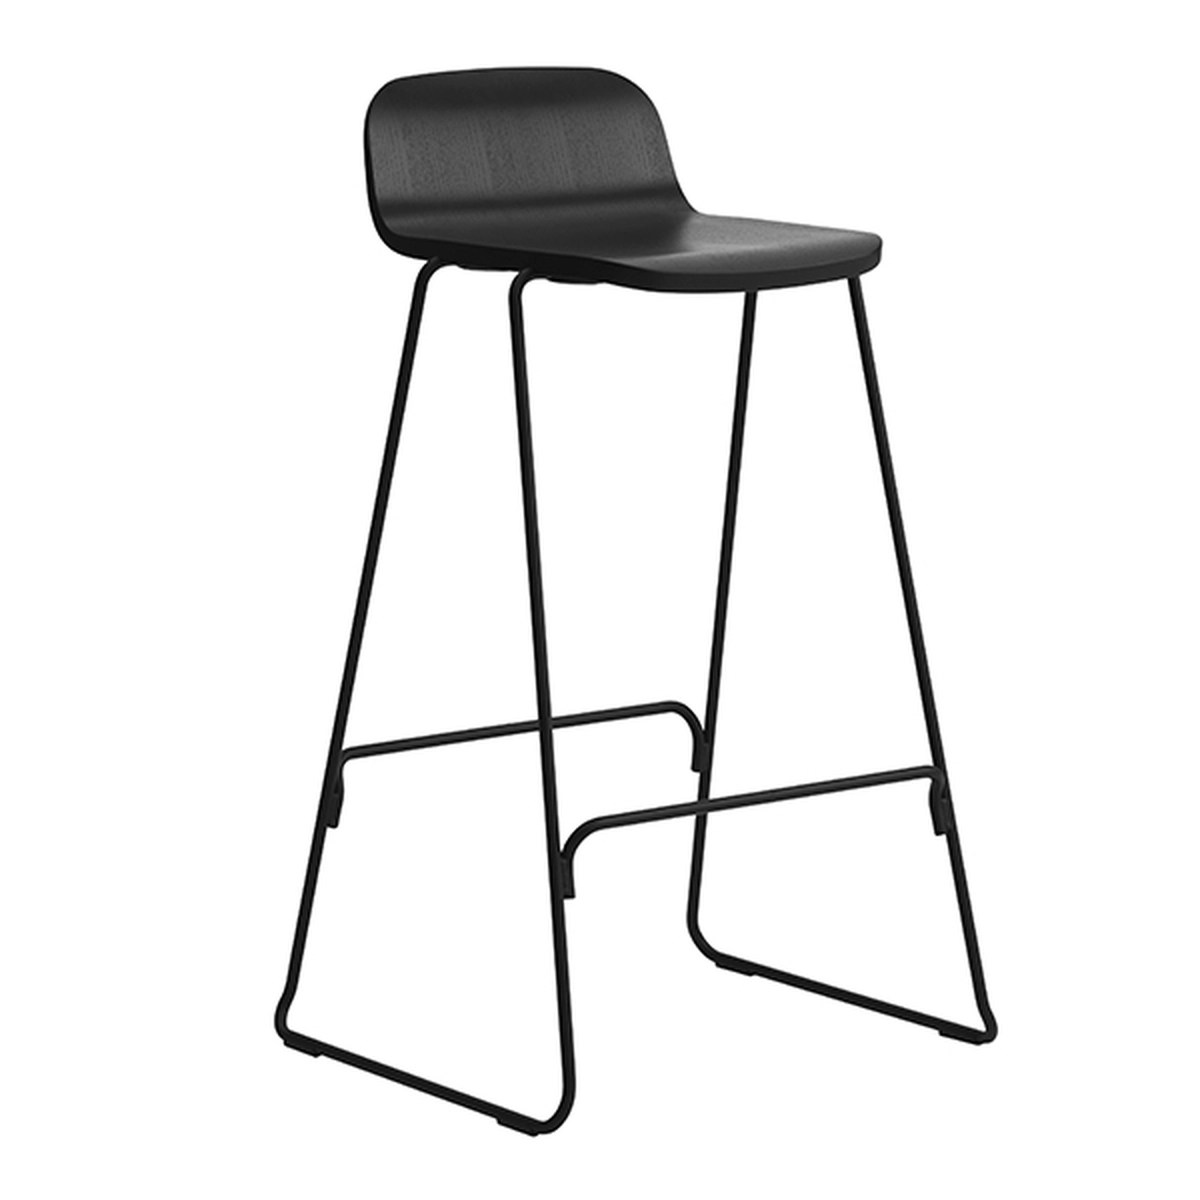 back of chair mannequin stand normann copenhagen just barstool 65 cm with rest